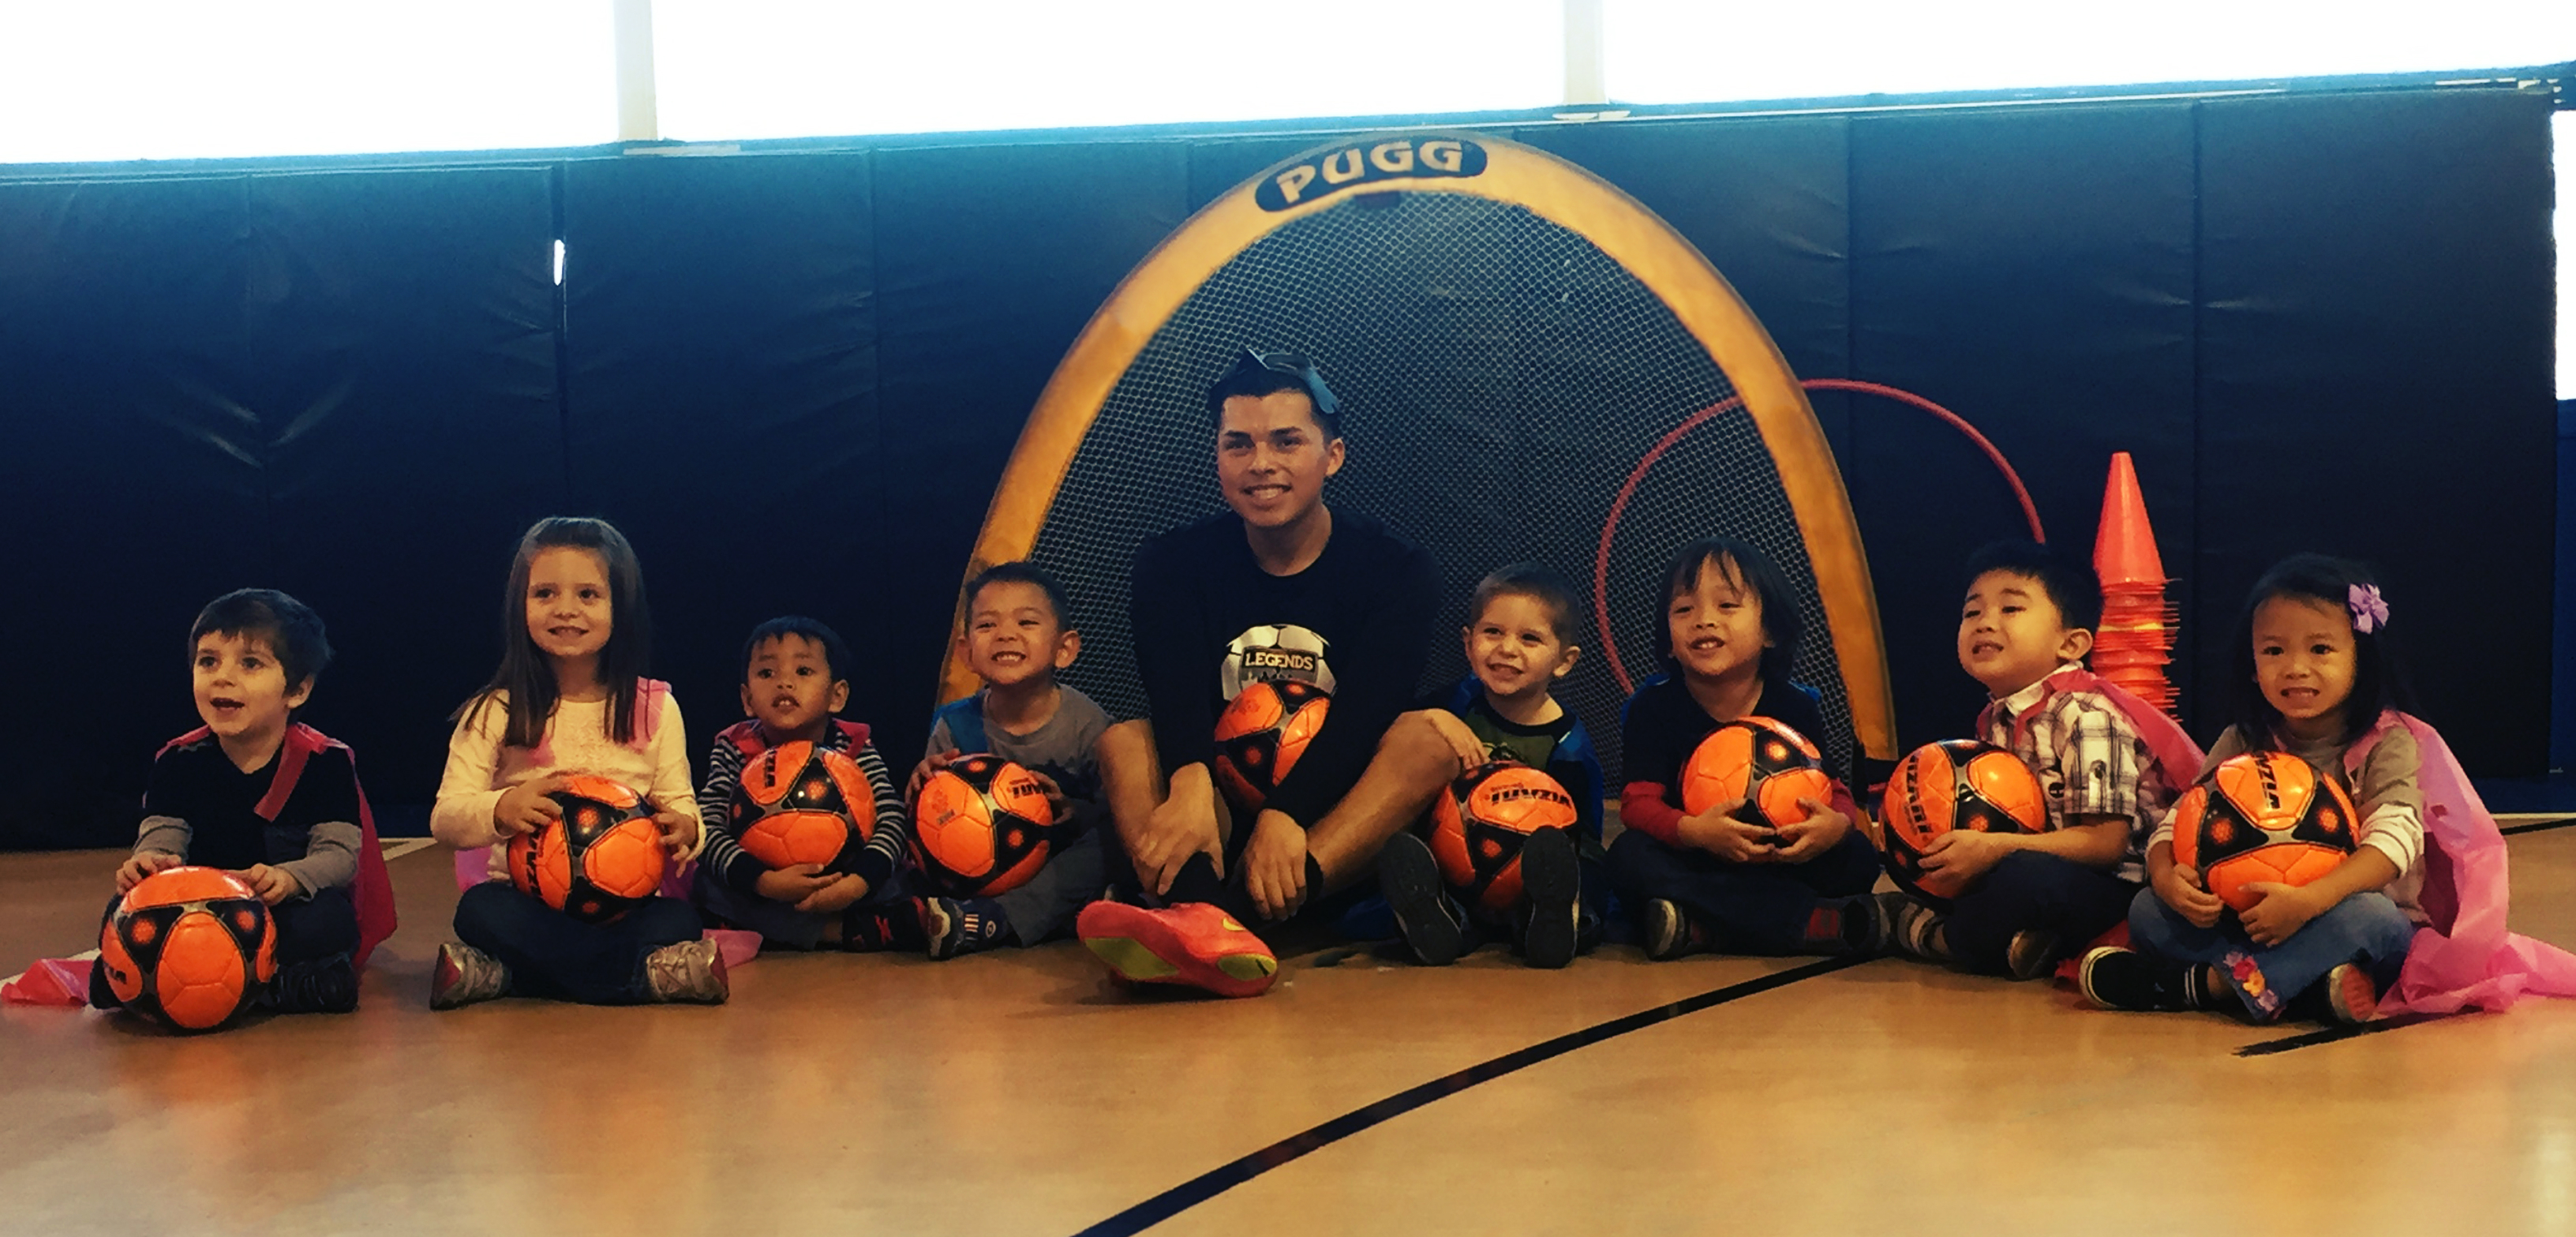 Kids Birthday Parties Las Vegas, Indoor Soccer, Basketball ...